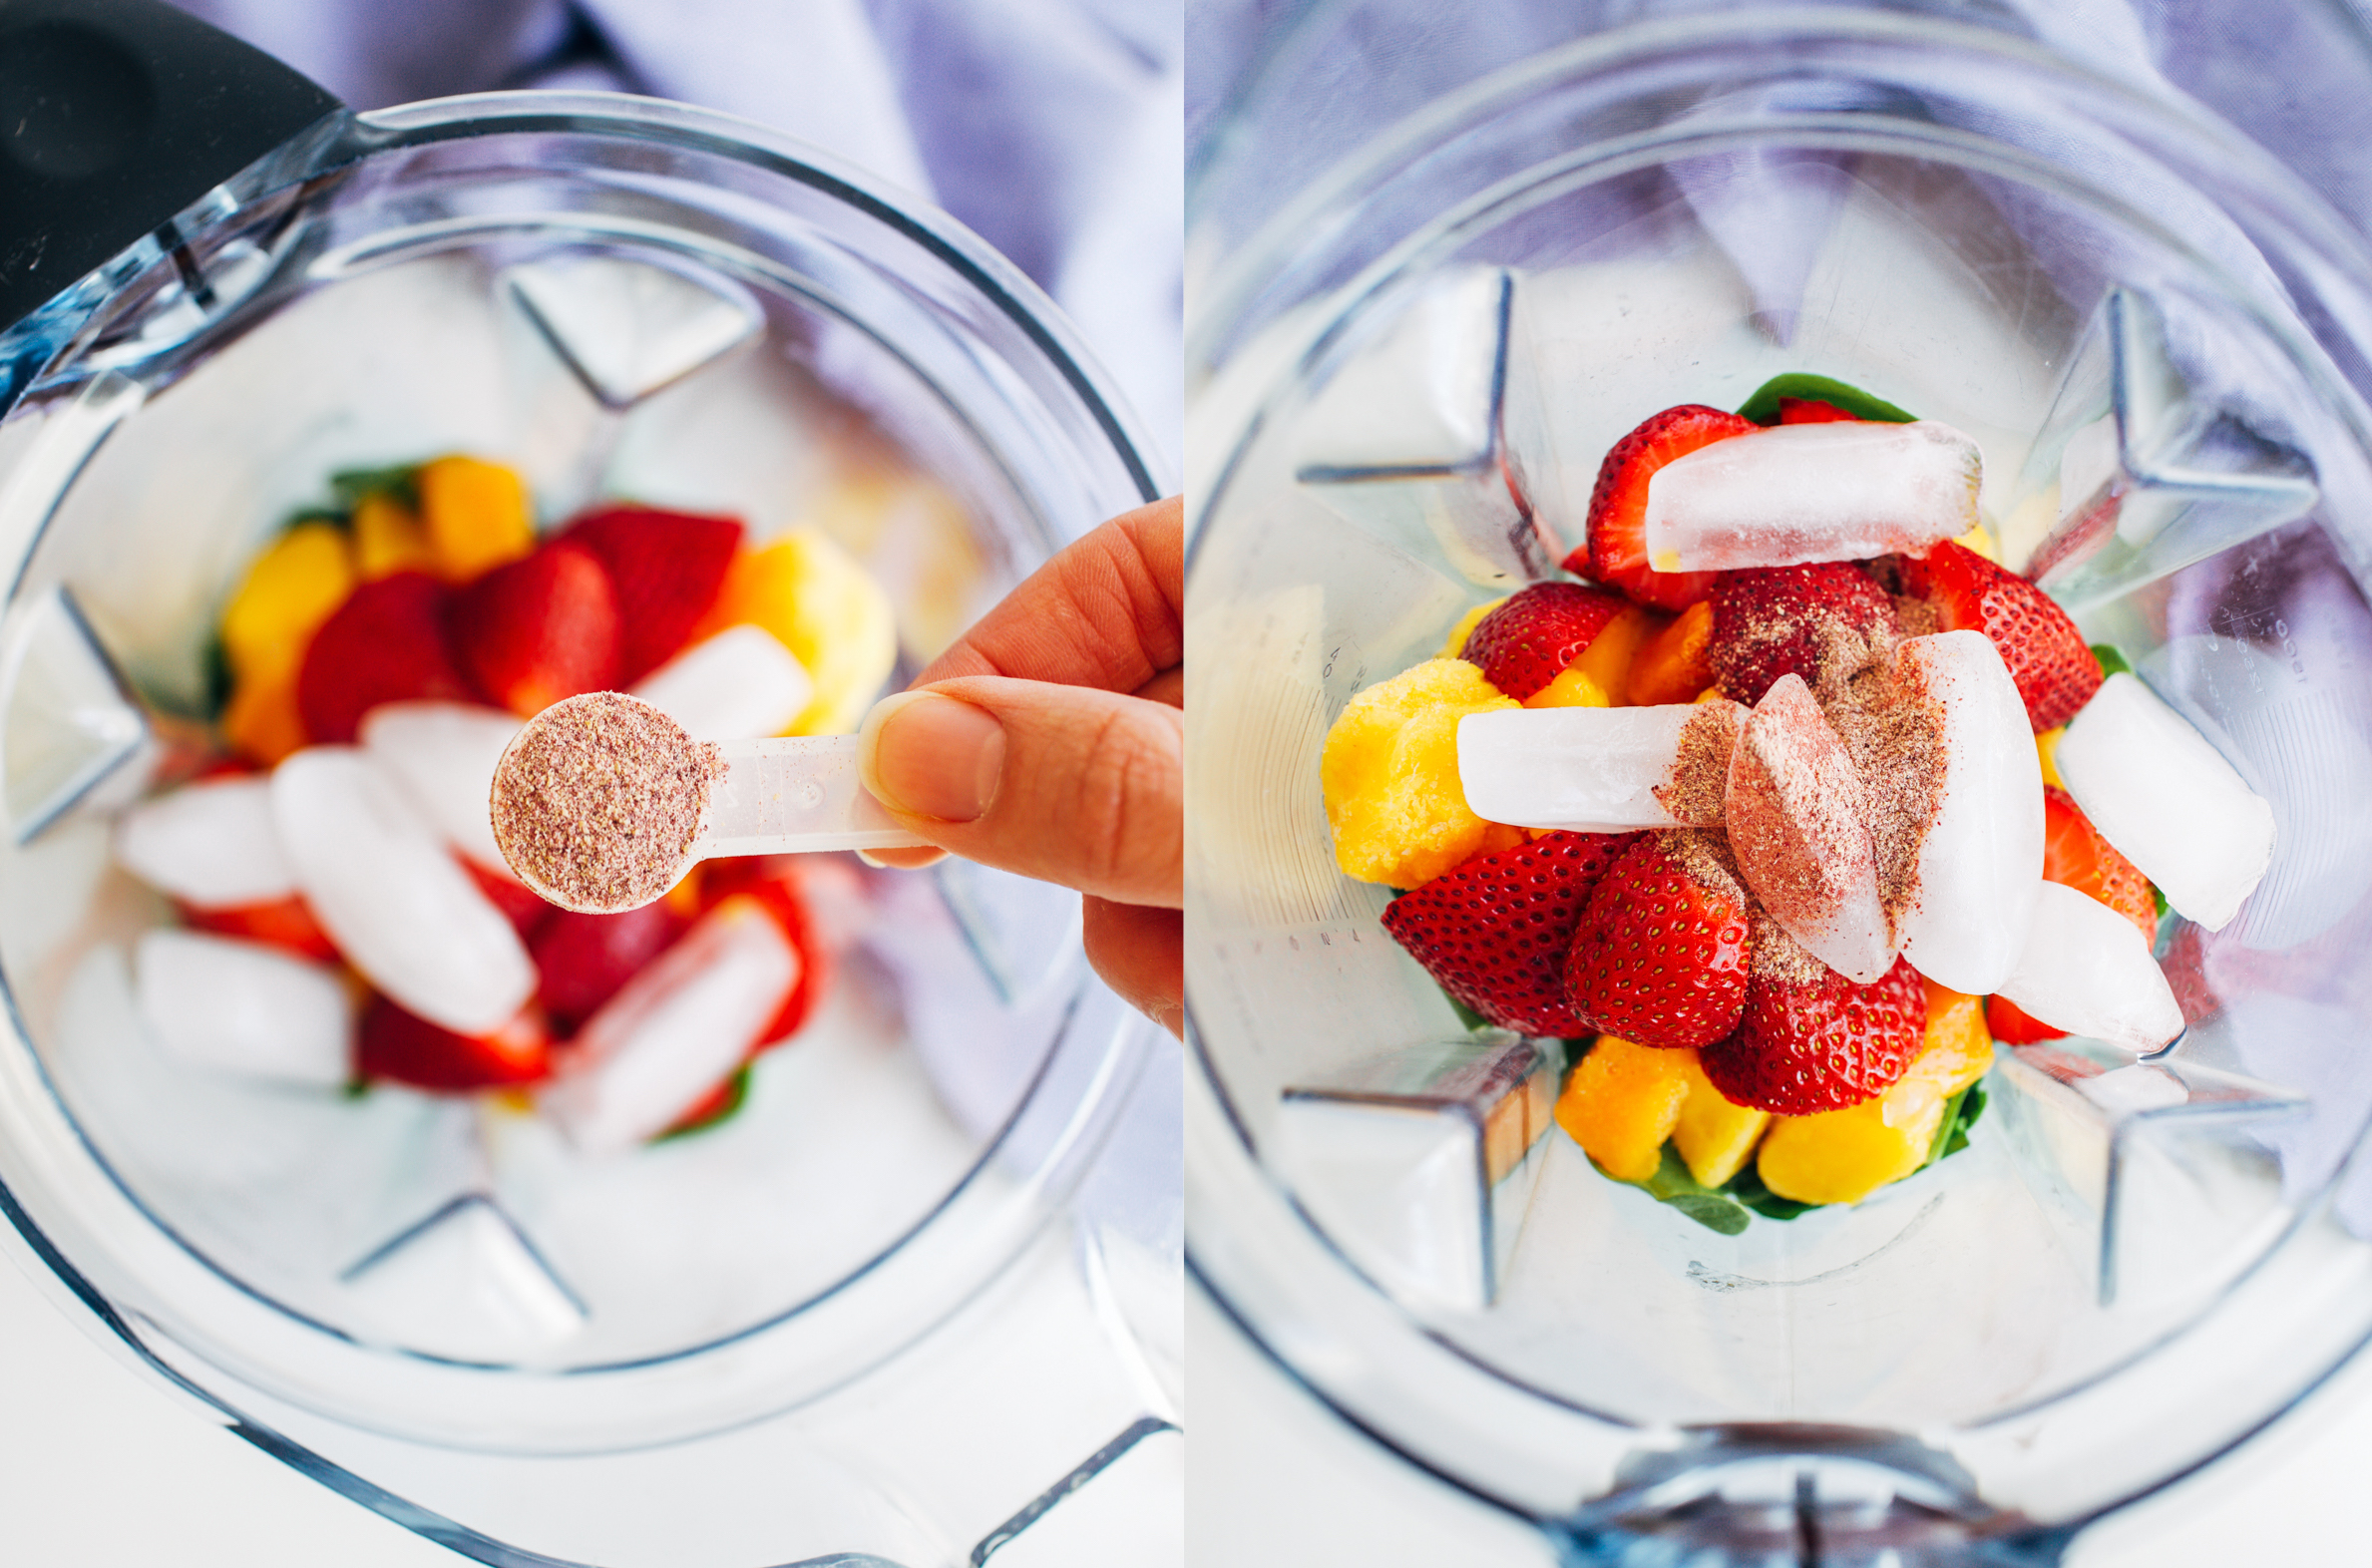 how to make a strawberry smoothie using frozen strawberries